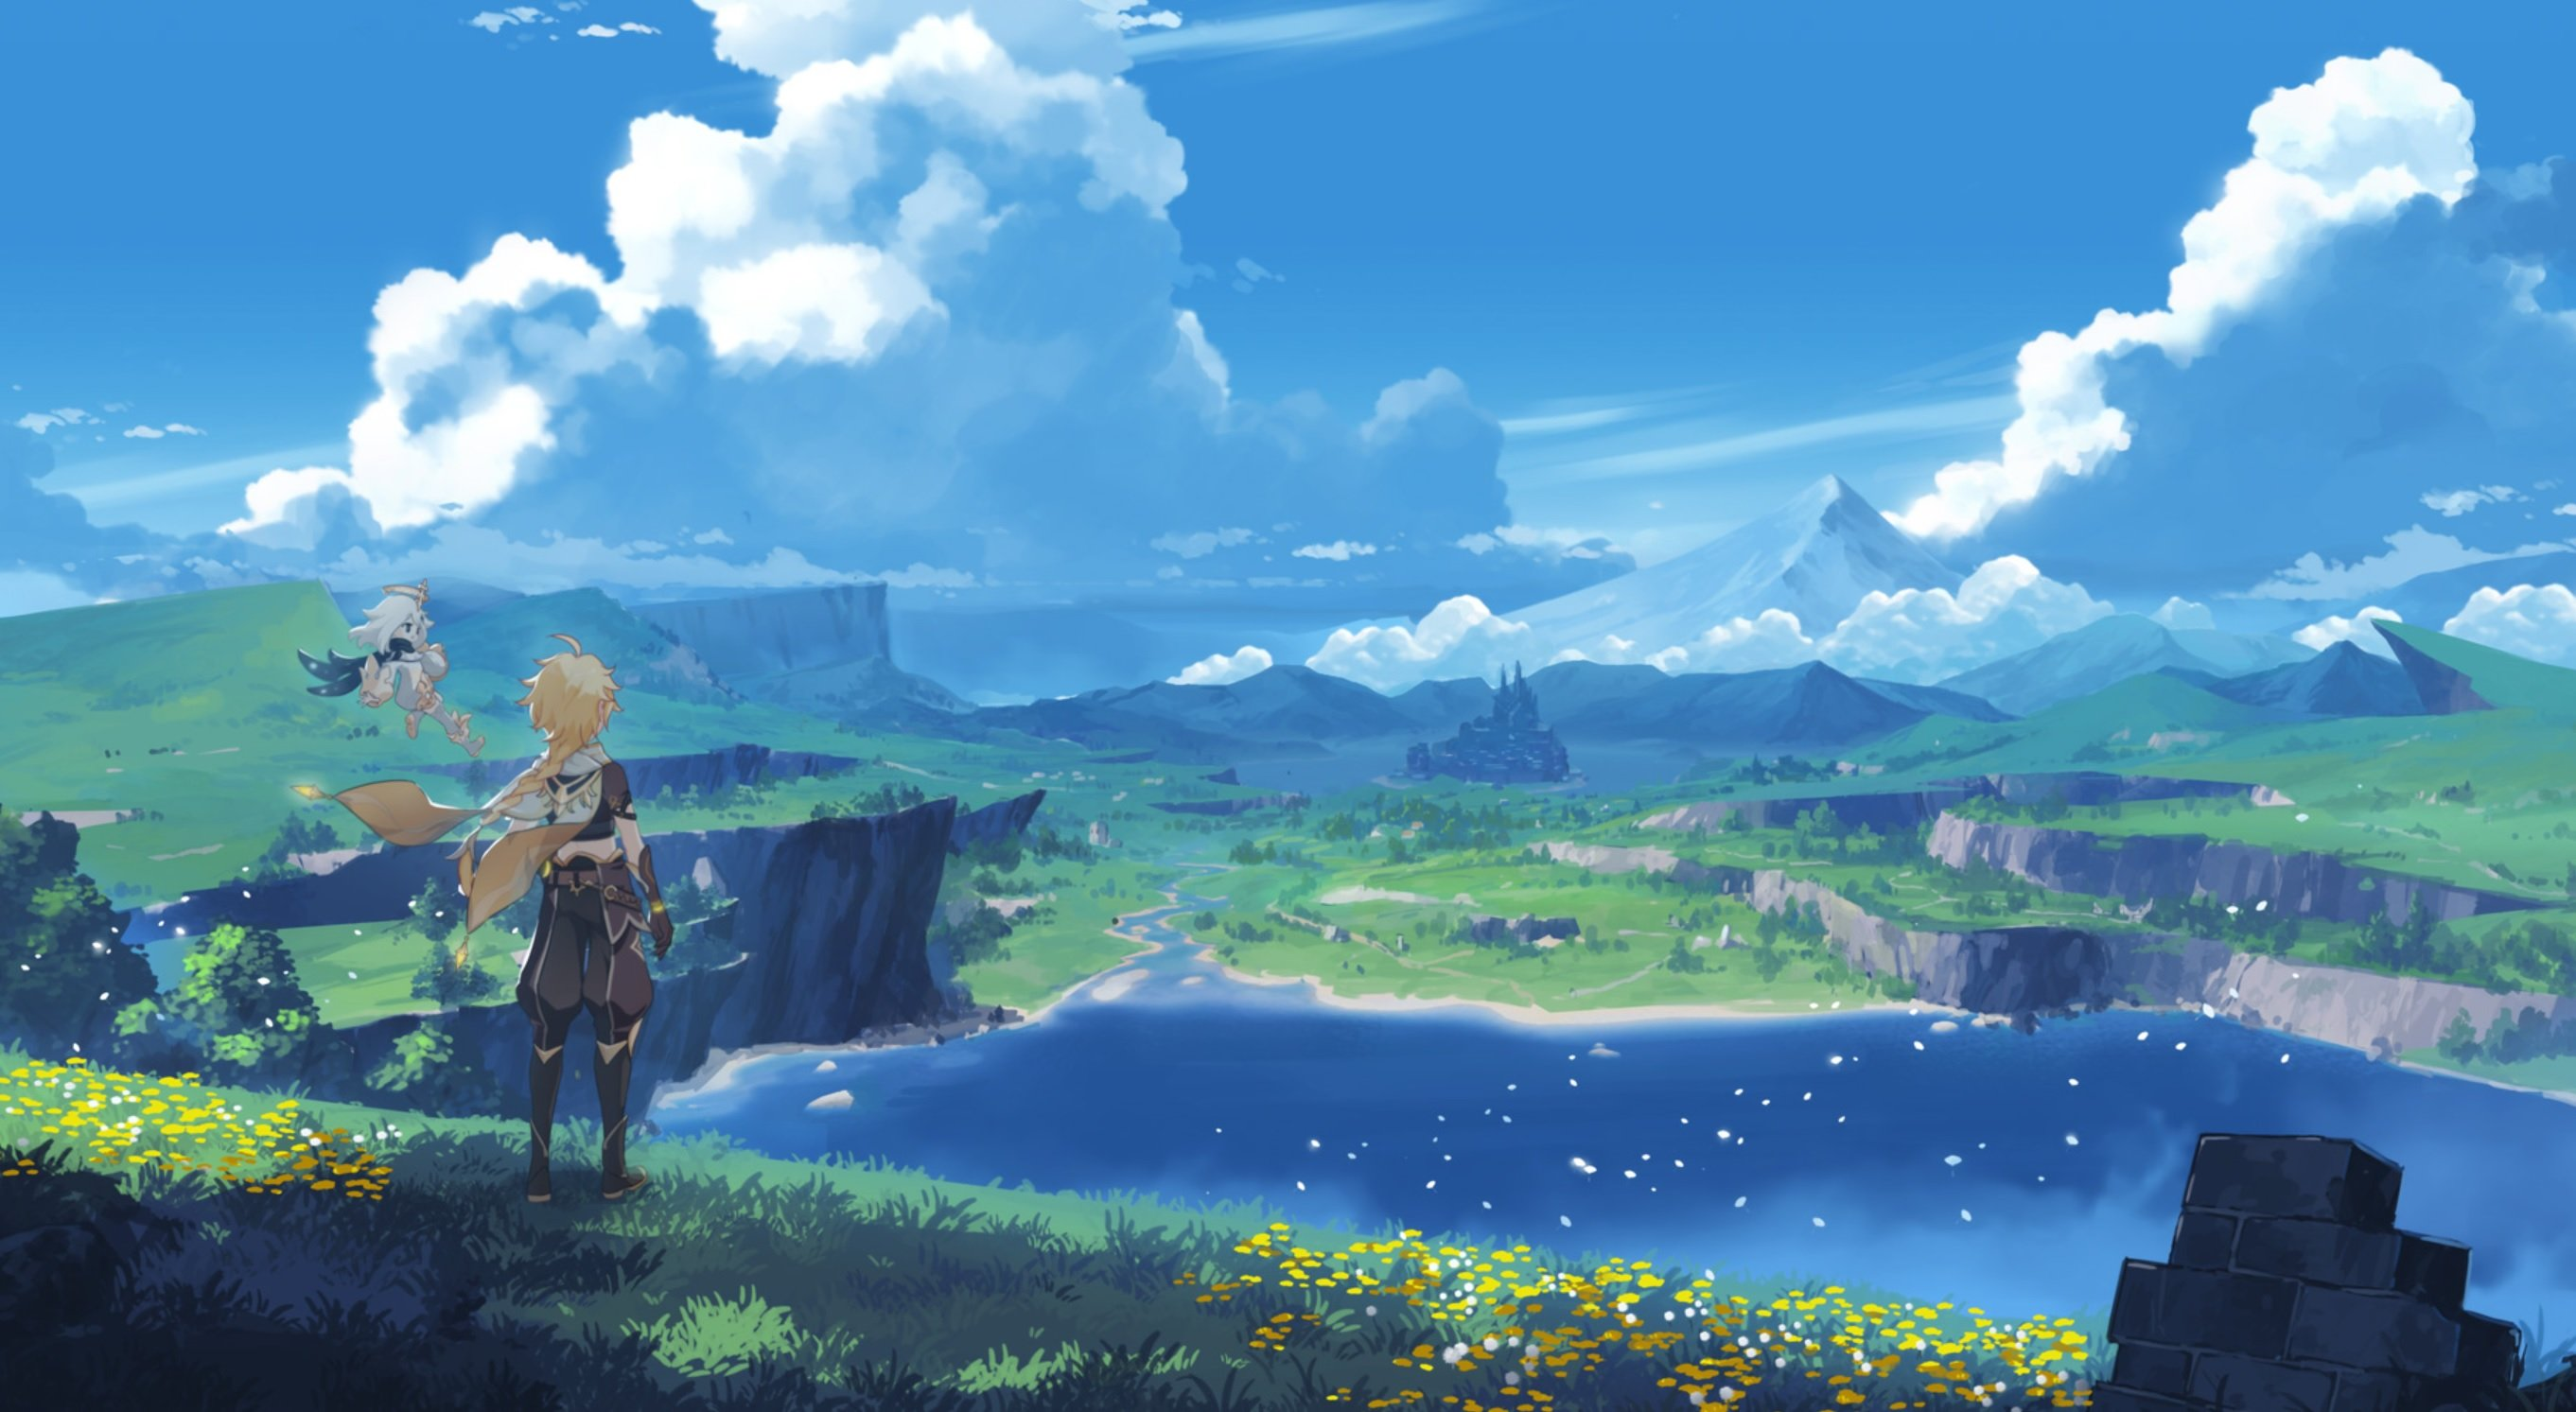 Genshin Impact developers reiterate that Zelda: Breath of the Wild was an inspiration, but the game is also 'very different' screenshot